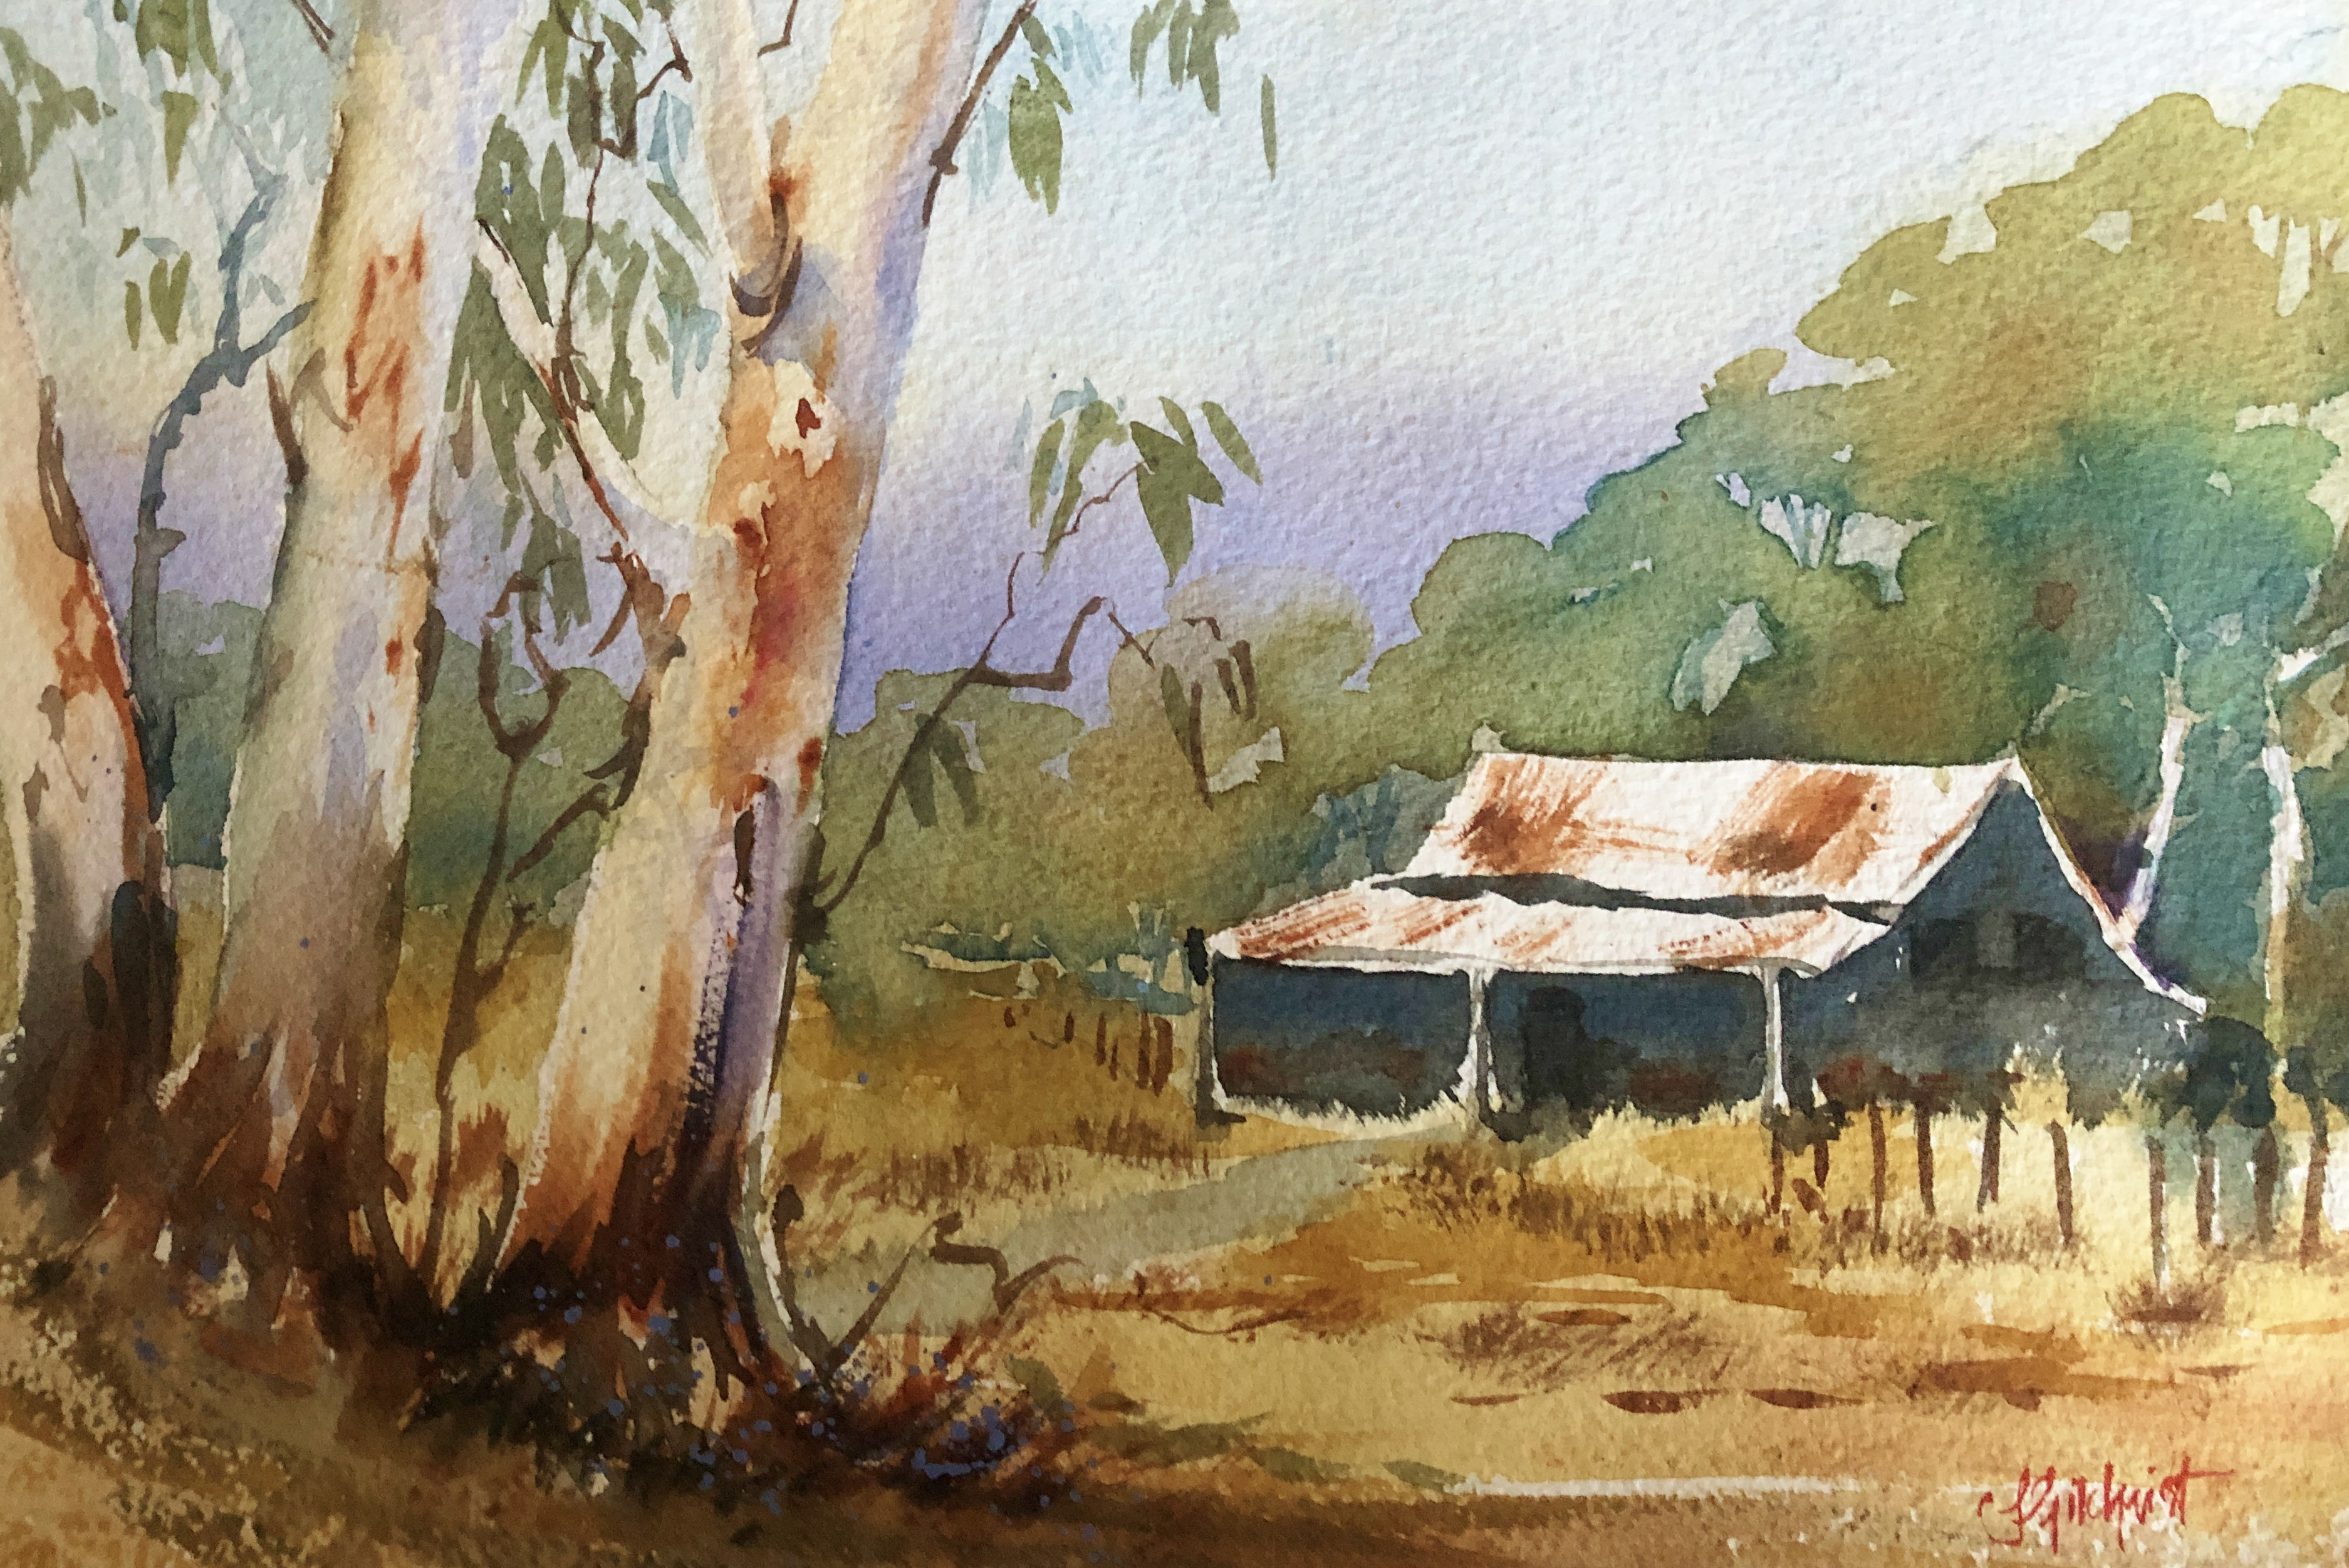 Watercolour workshops online on demand with Jenny Giclhrist and Northern Beaches Watercolour